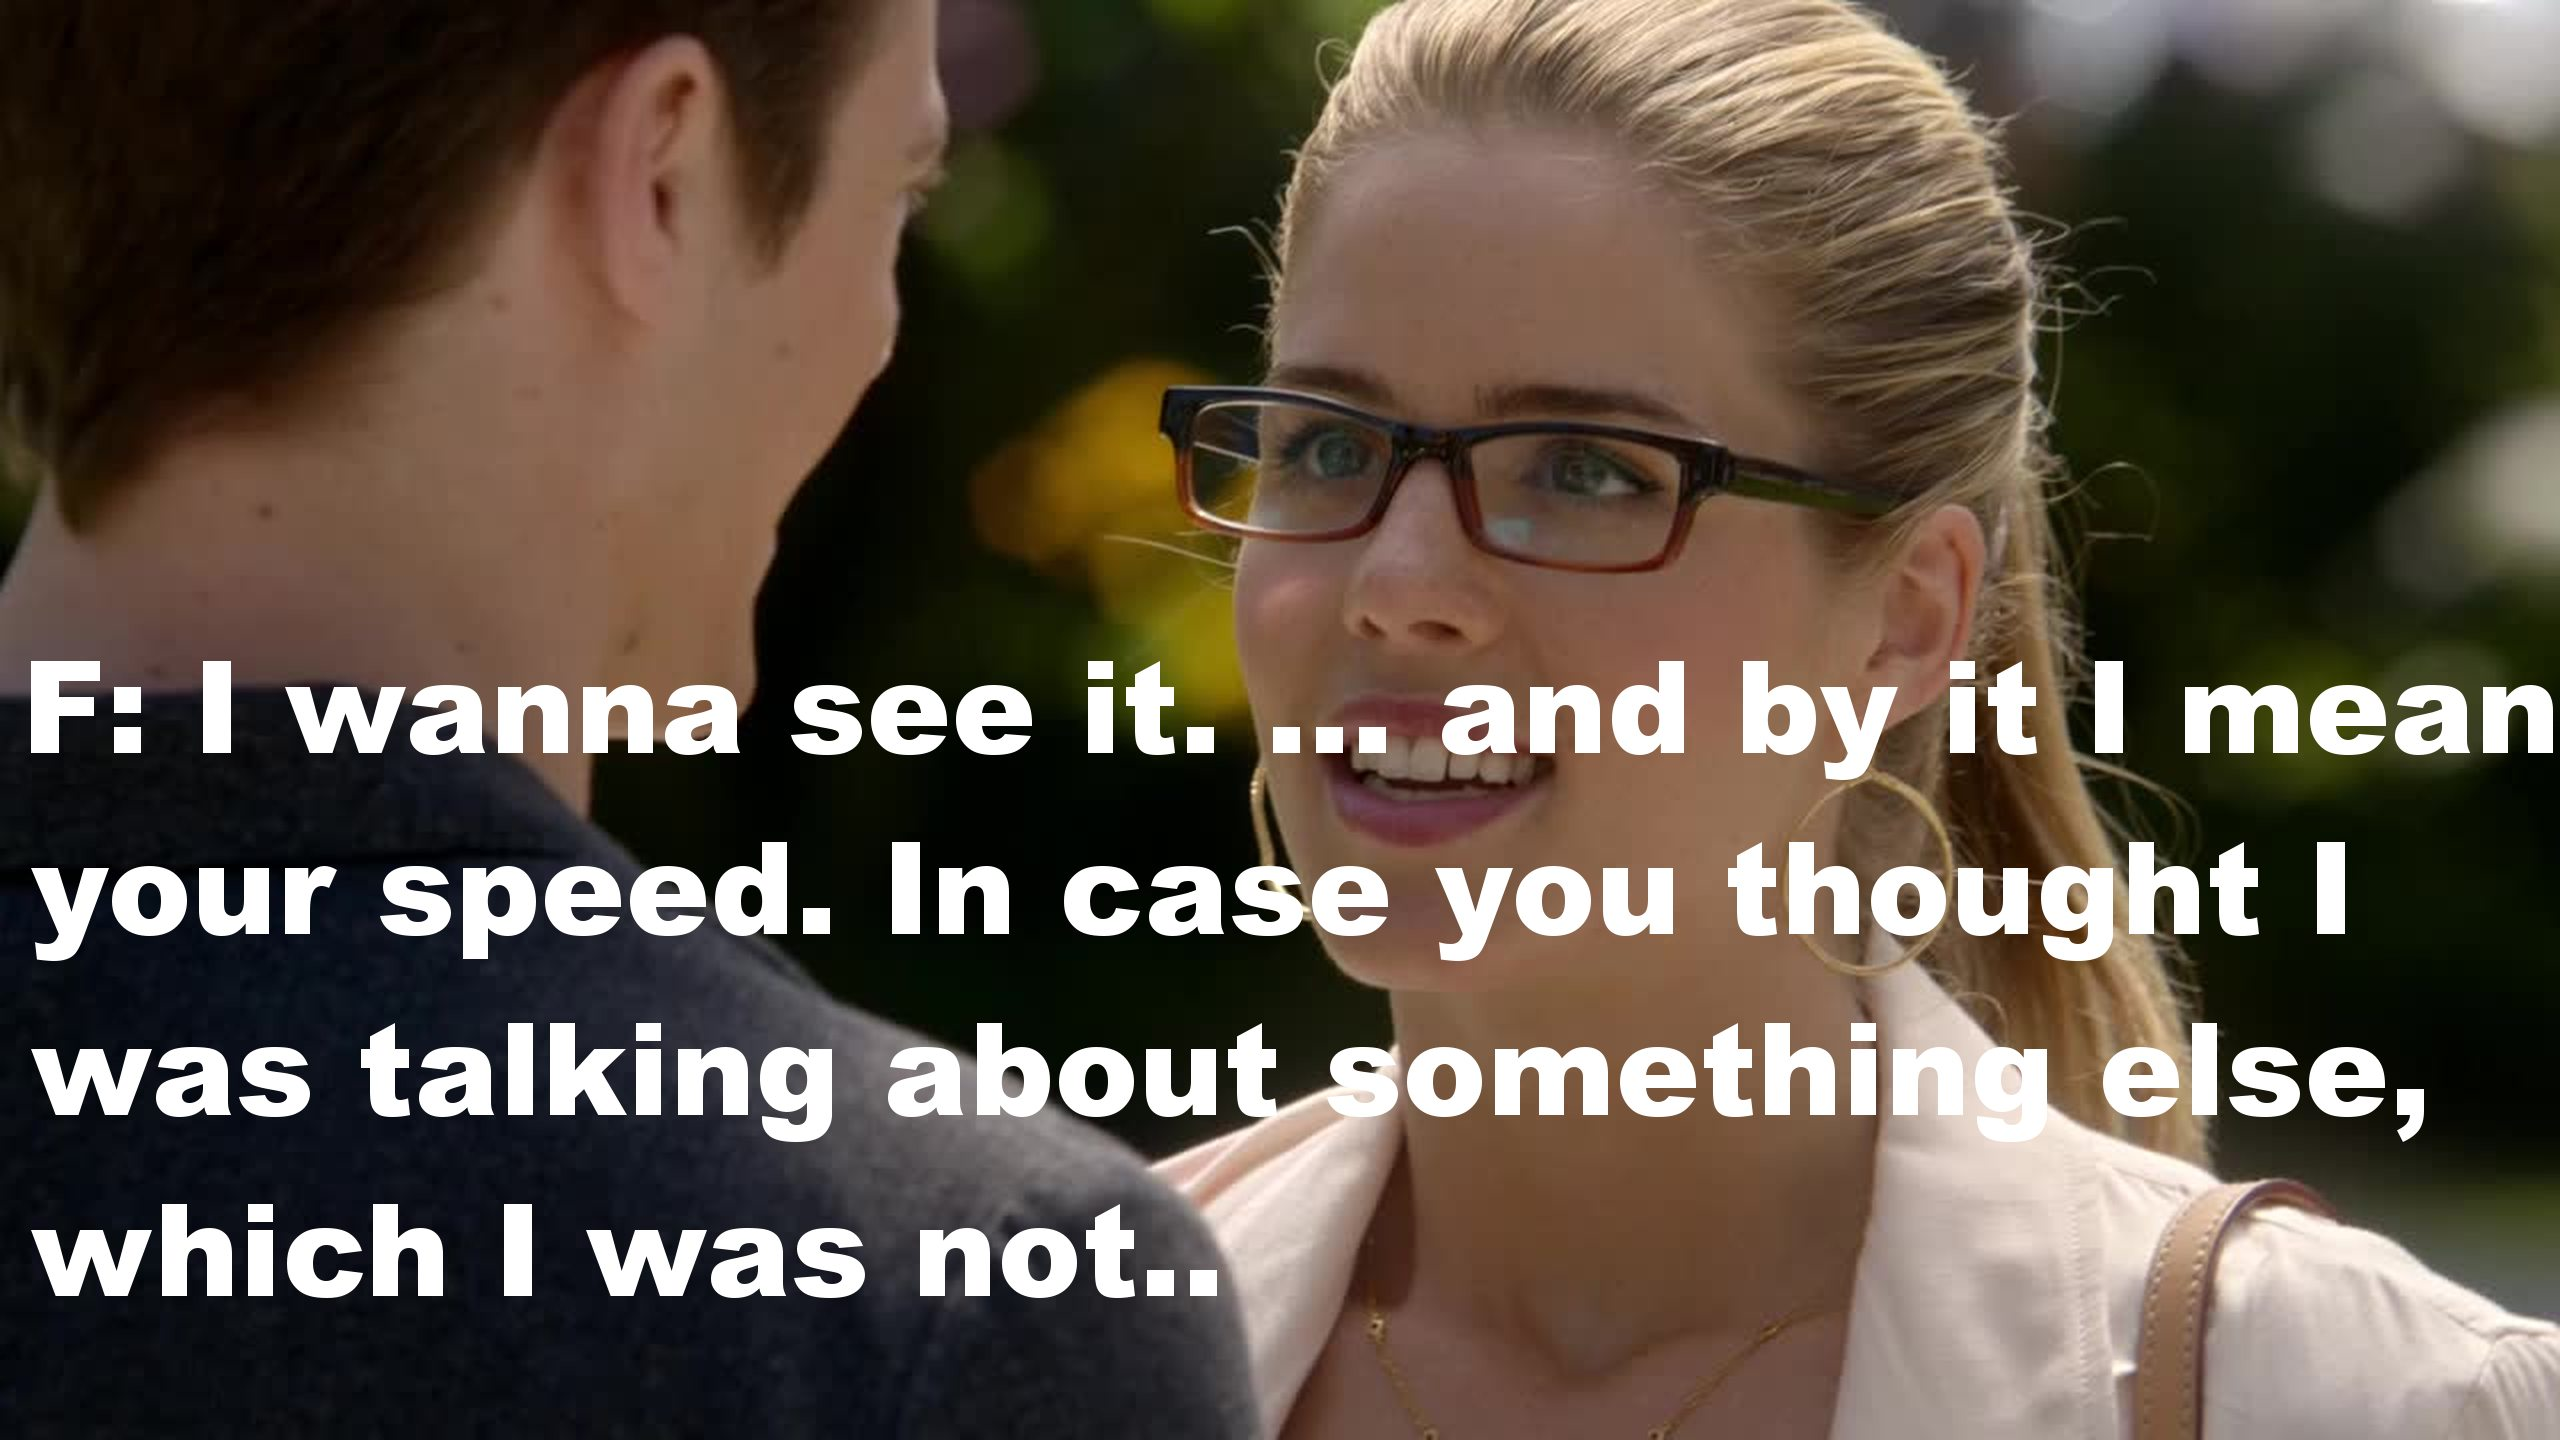 Felicity being Felicity. I love her everywhere she goes!